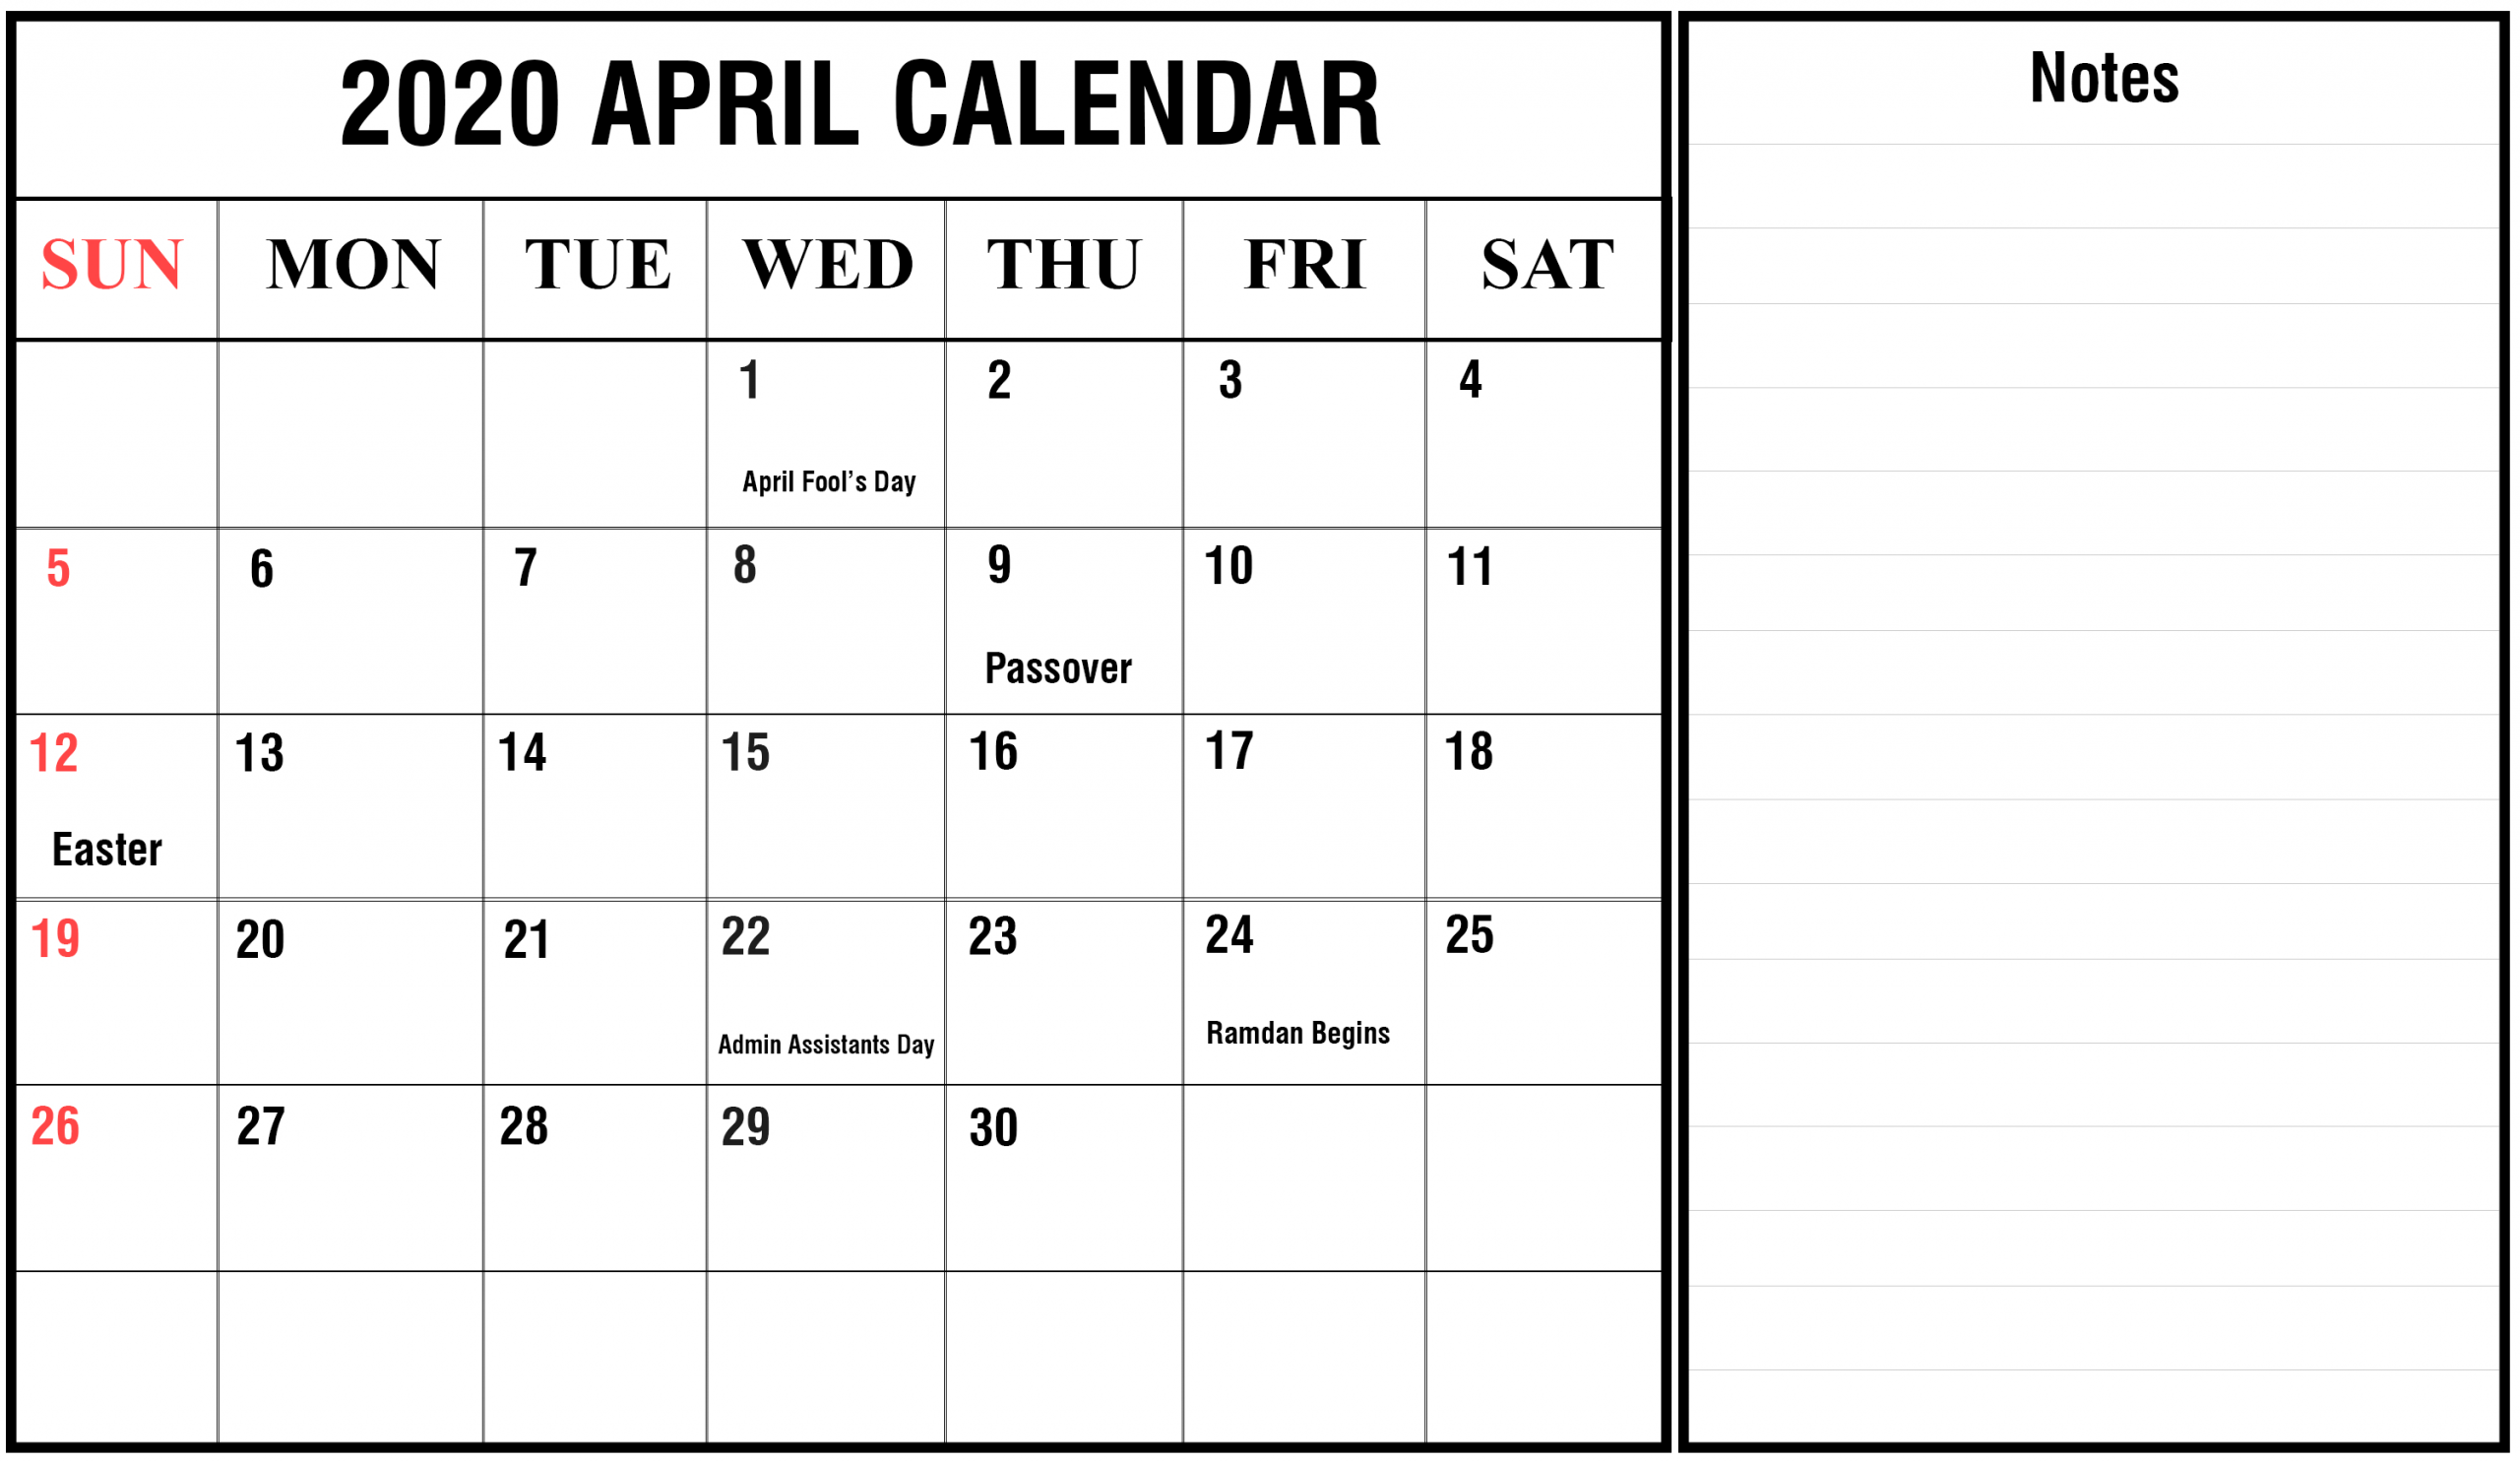 Free April Calendar 2020 Printable Editable Template